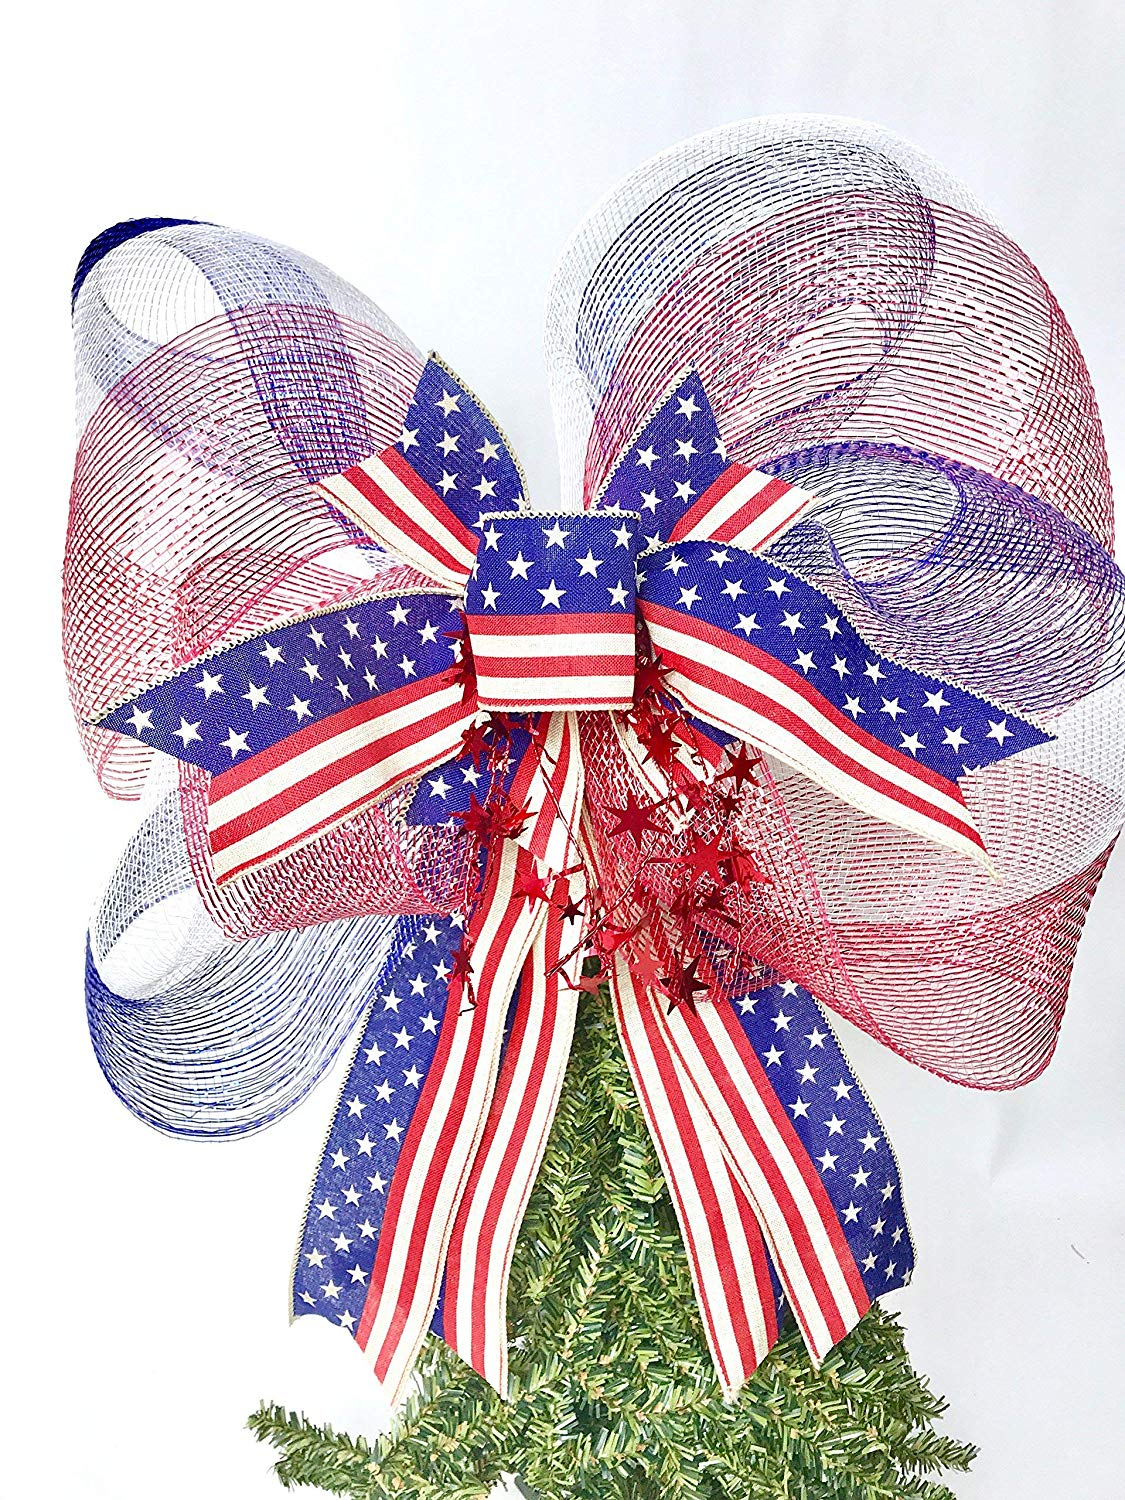 Wreath Bow, Red White Blue Mesh Handmade Large Gift Bow, Office Decorating, Wreath Bows, Holiday Bow, Home Decor, Swag Bow, Door Decor - Handmade Bow